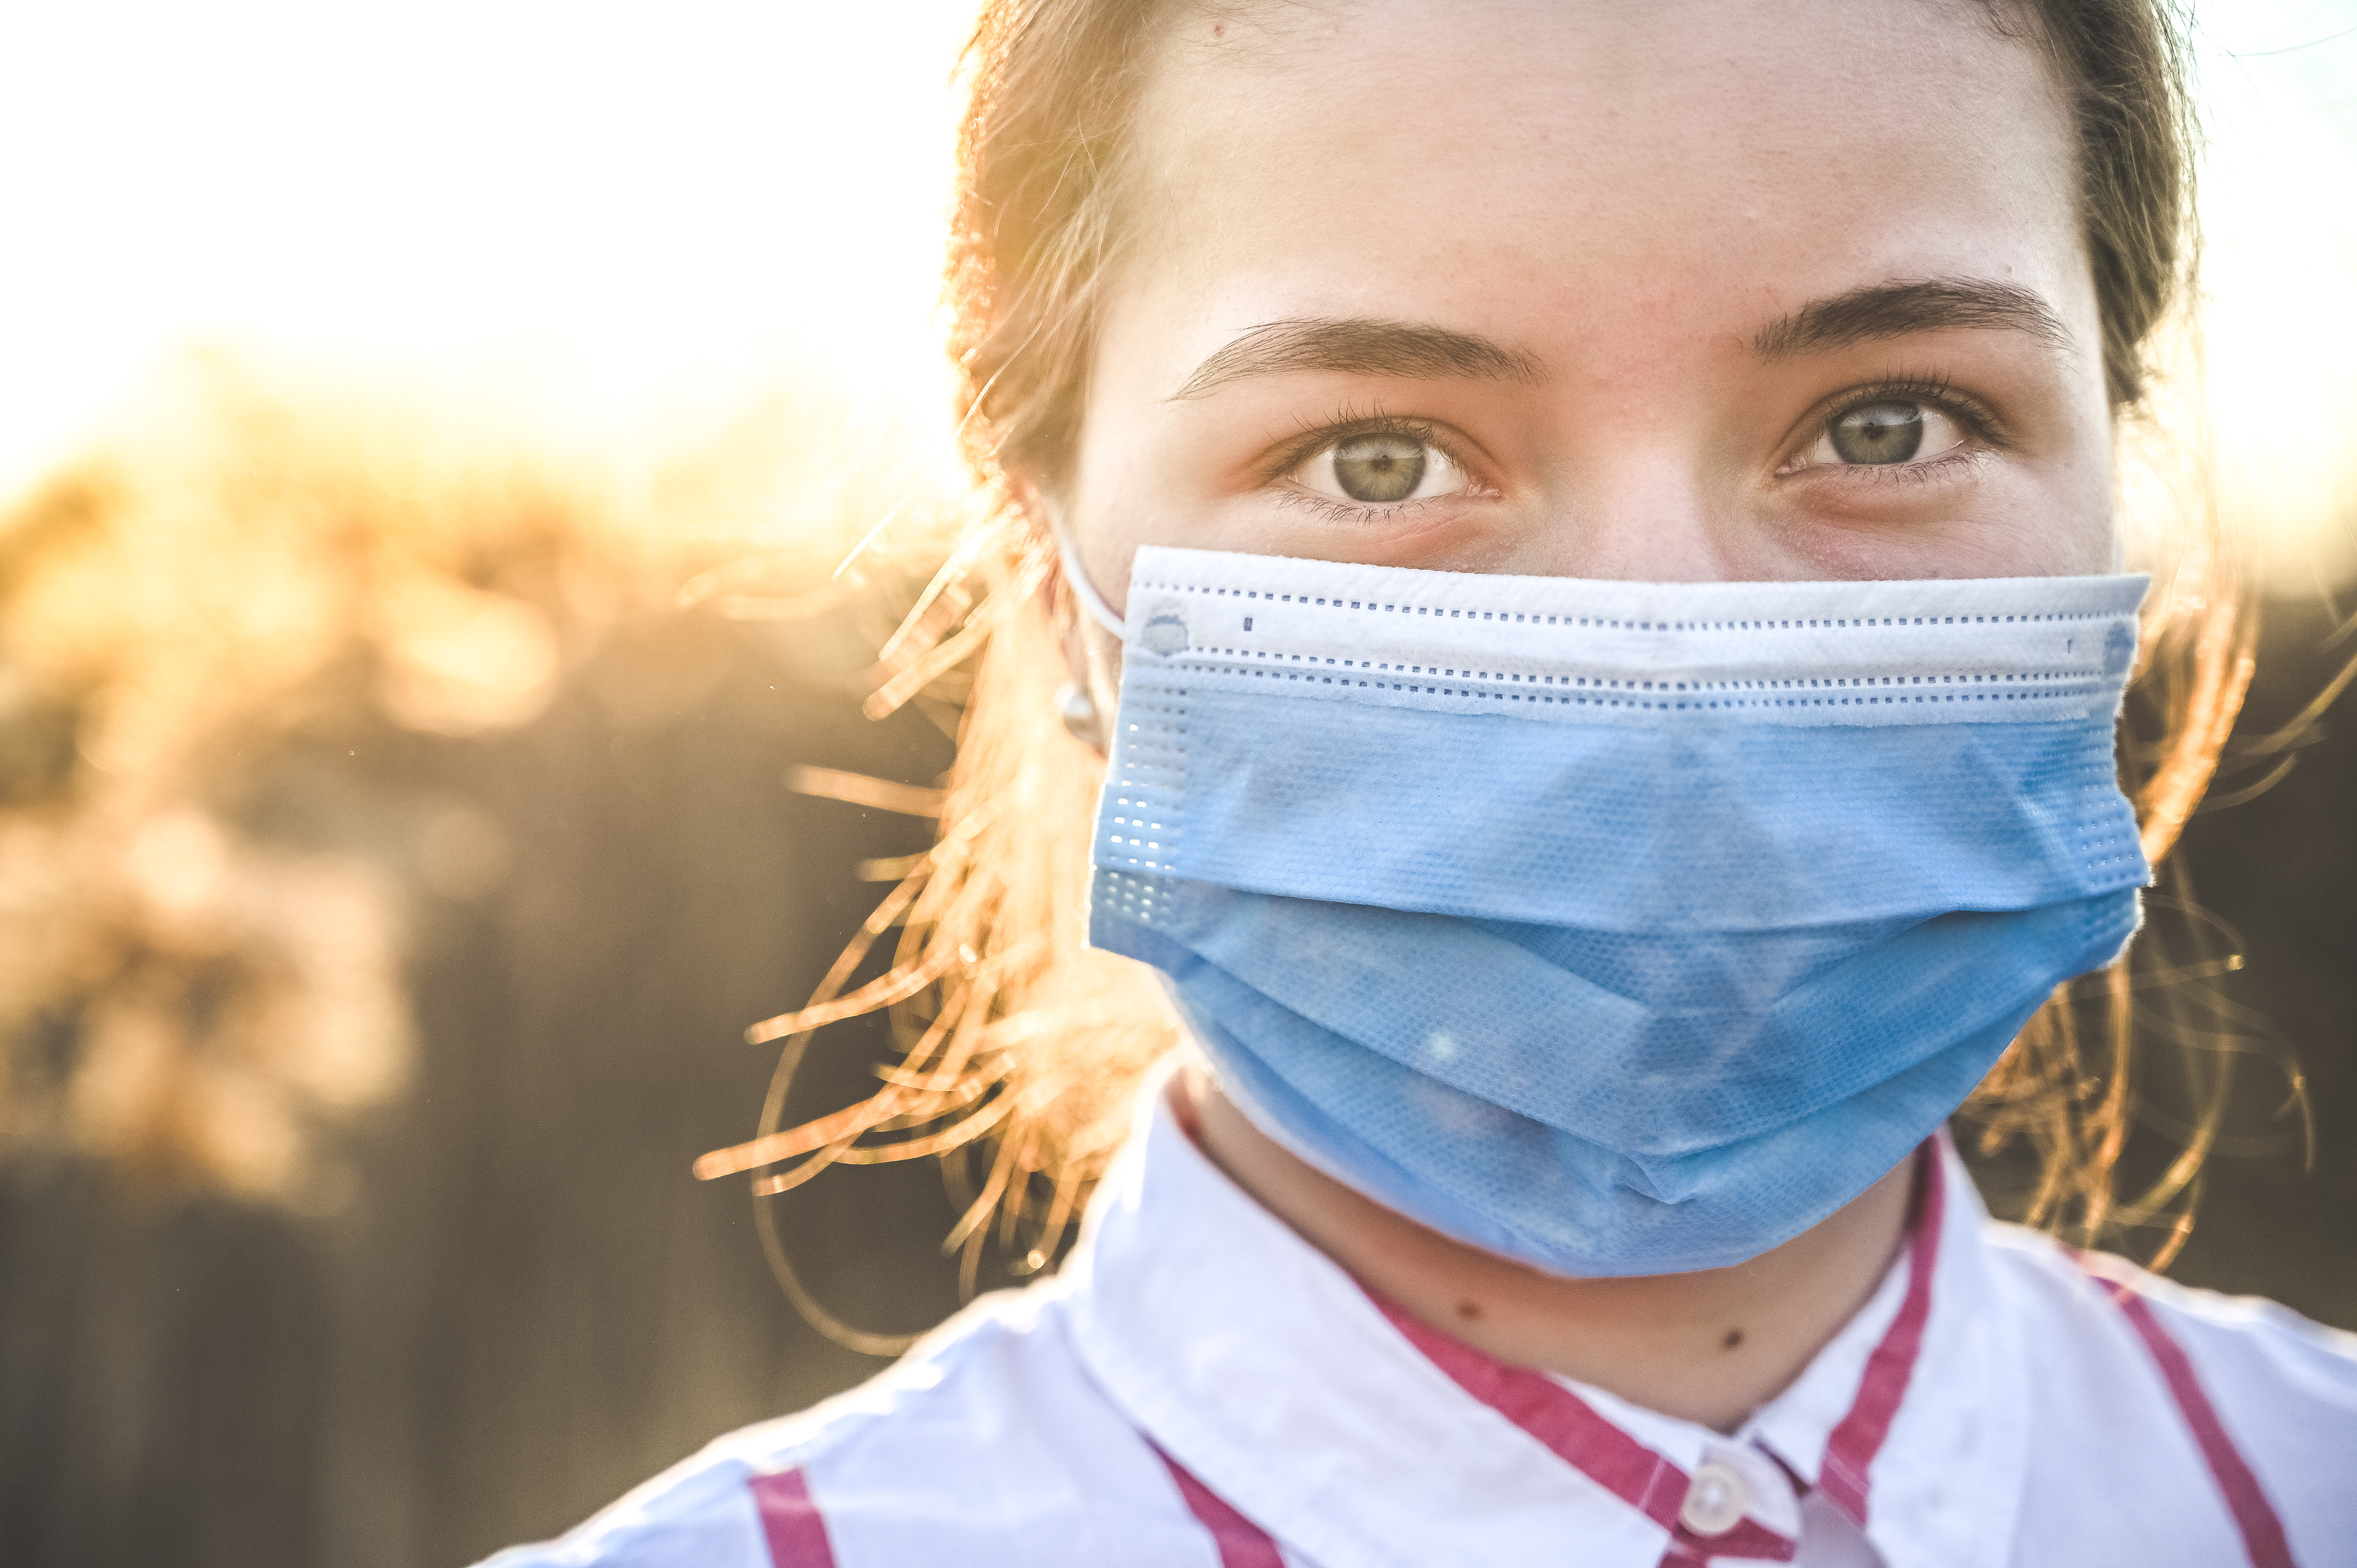 Woman wearing protective mask against coronavirus. Put mask to fight against Corona virus. COVID-19 SARS, SARS-CoV, virus 2020 chinese virus 2019-nCoV